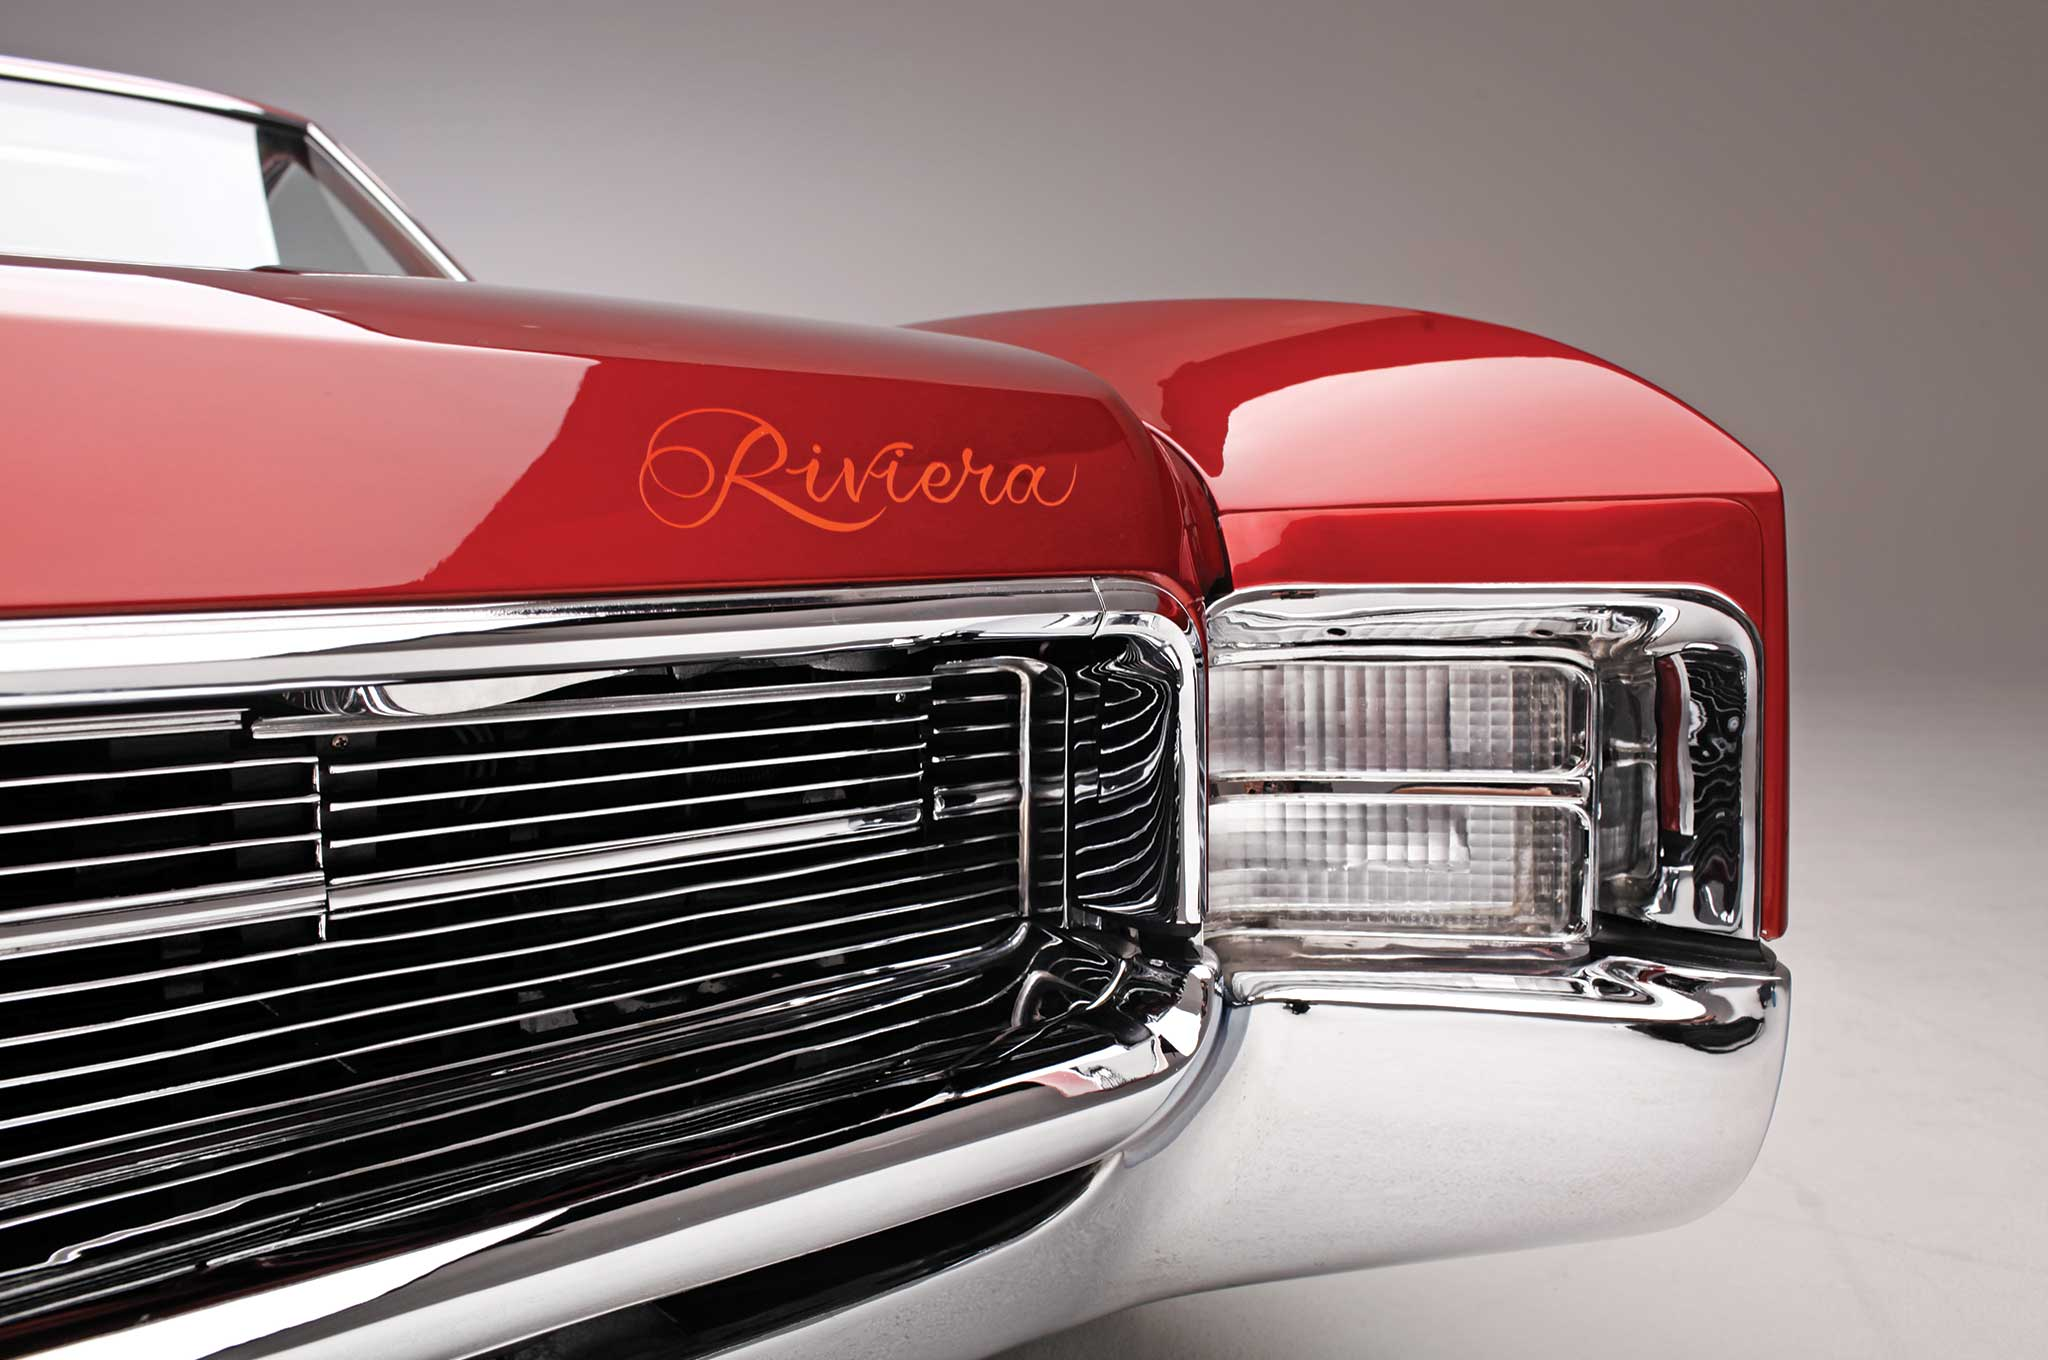 Service Manual 1979 Buick Riviera Headlight Replace Buy Used 1979 Buick Riviera Coupe 2 Door